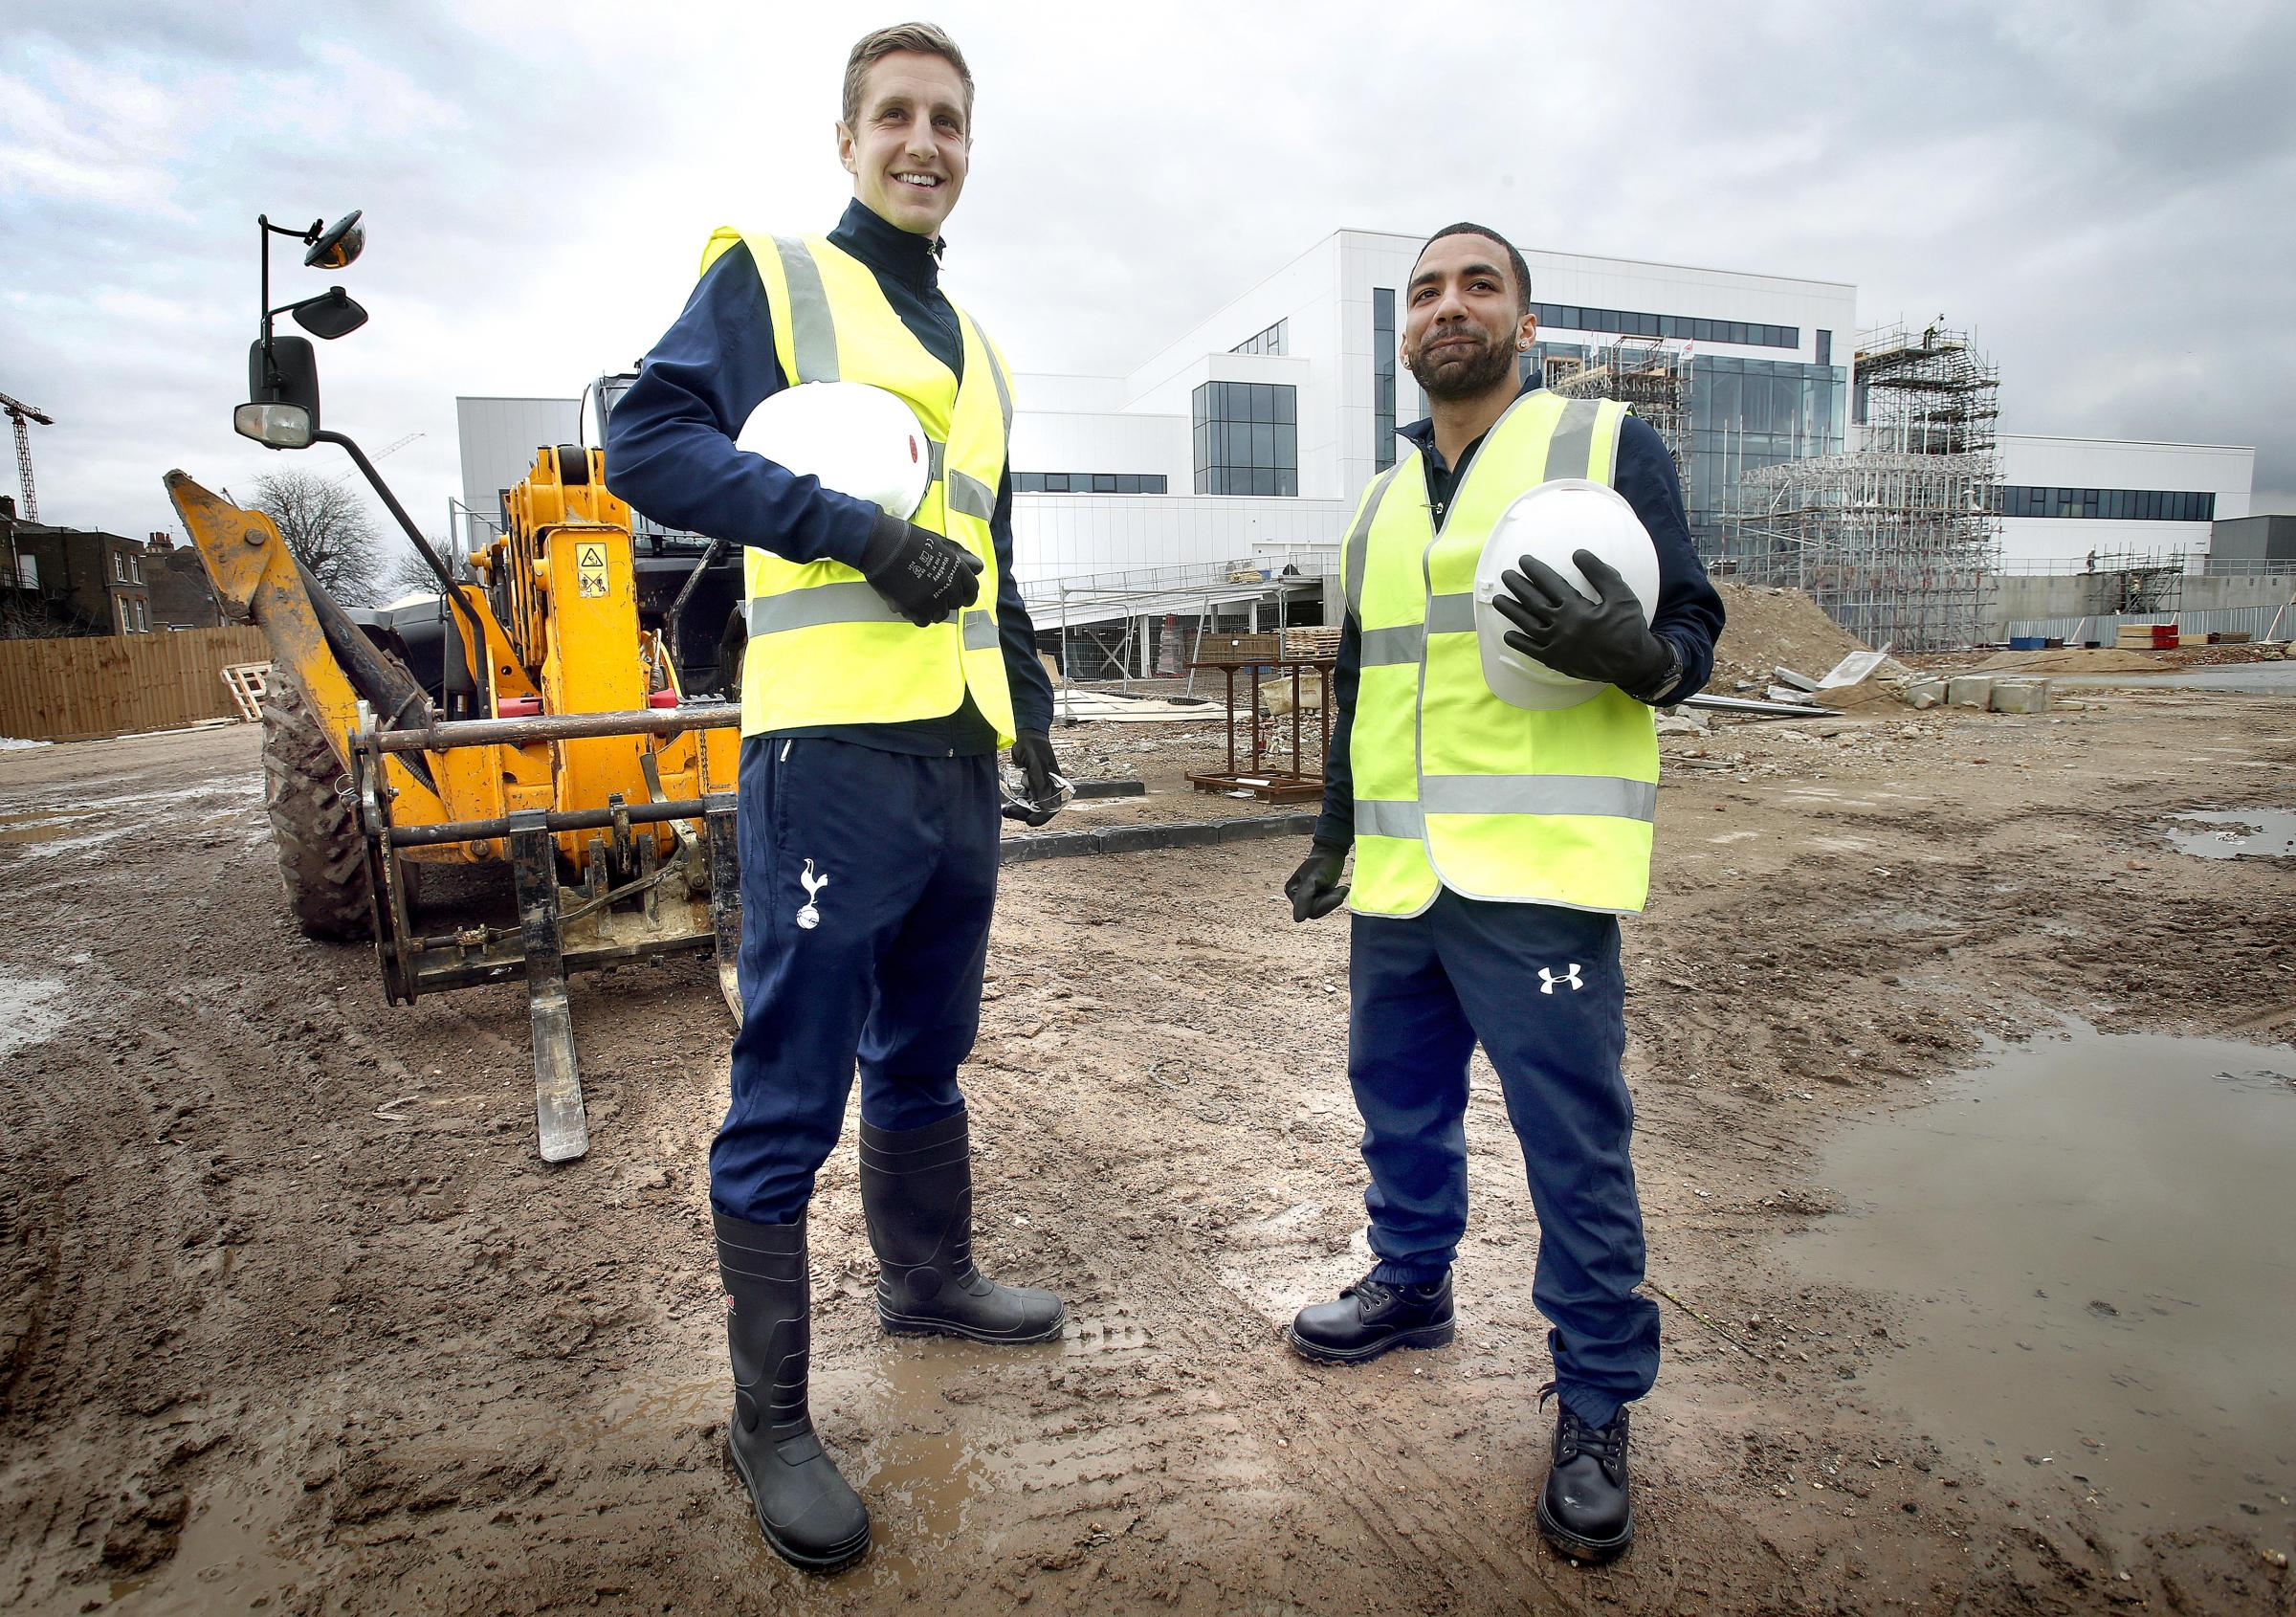 Spurs players Michael Dawson and Aaron Lennon stand on the site of where the new 56,000-seater stadium will be built